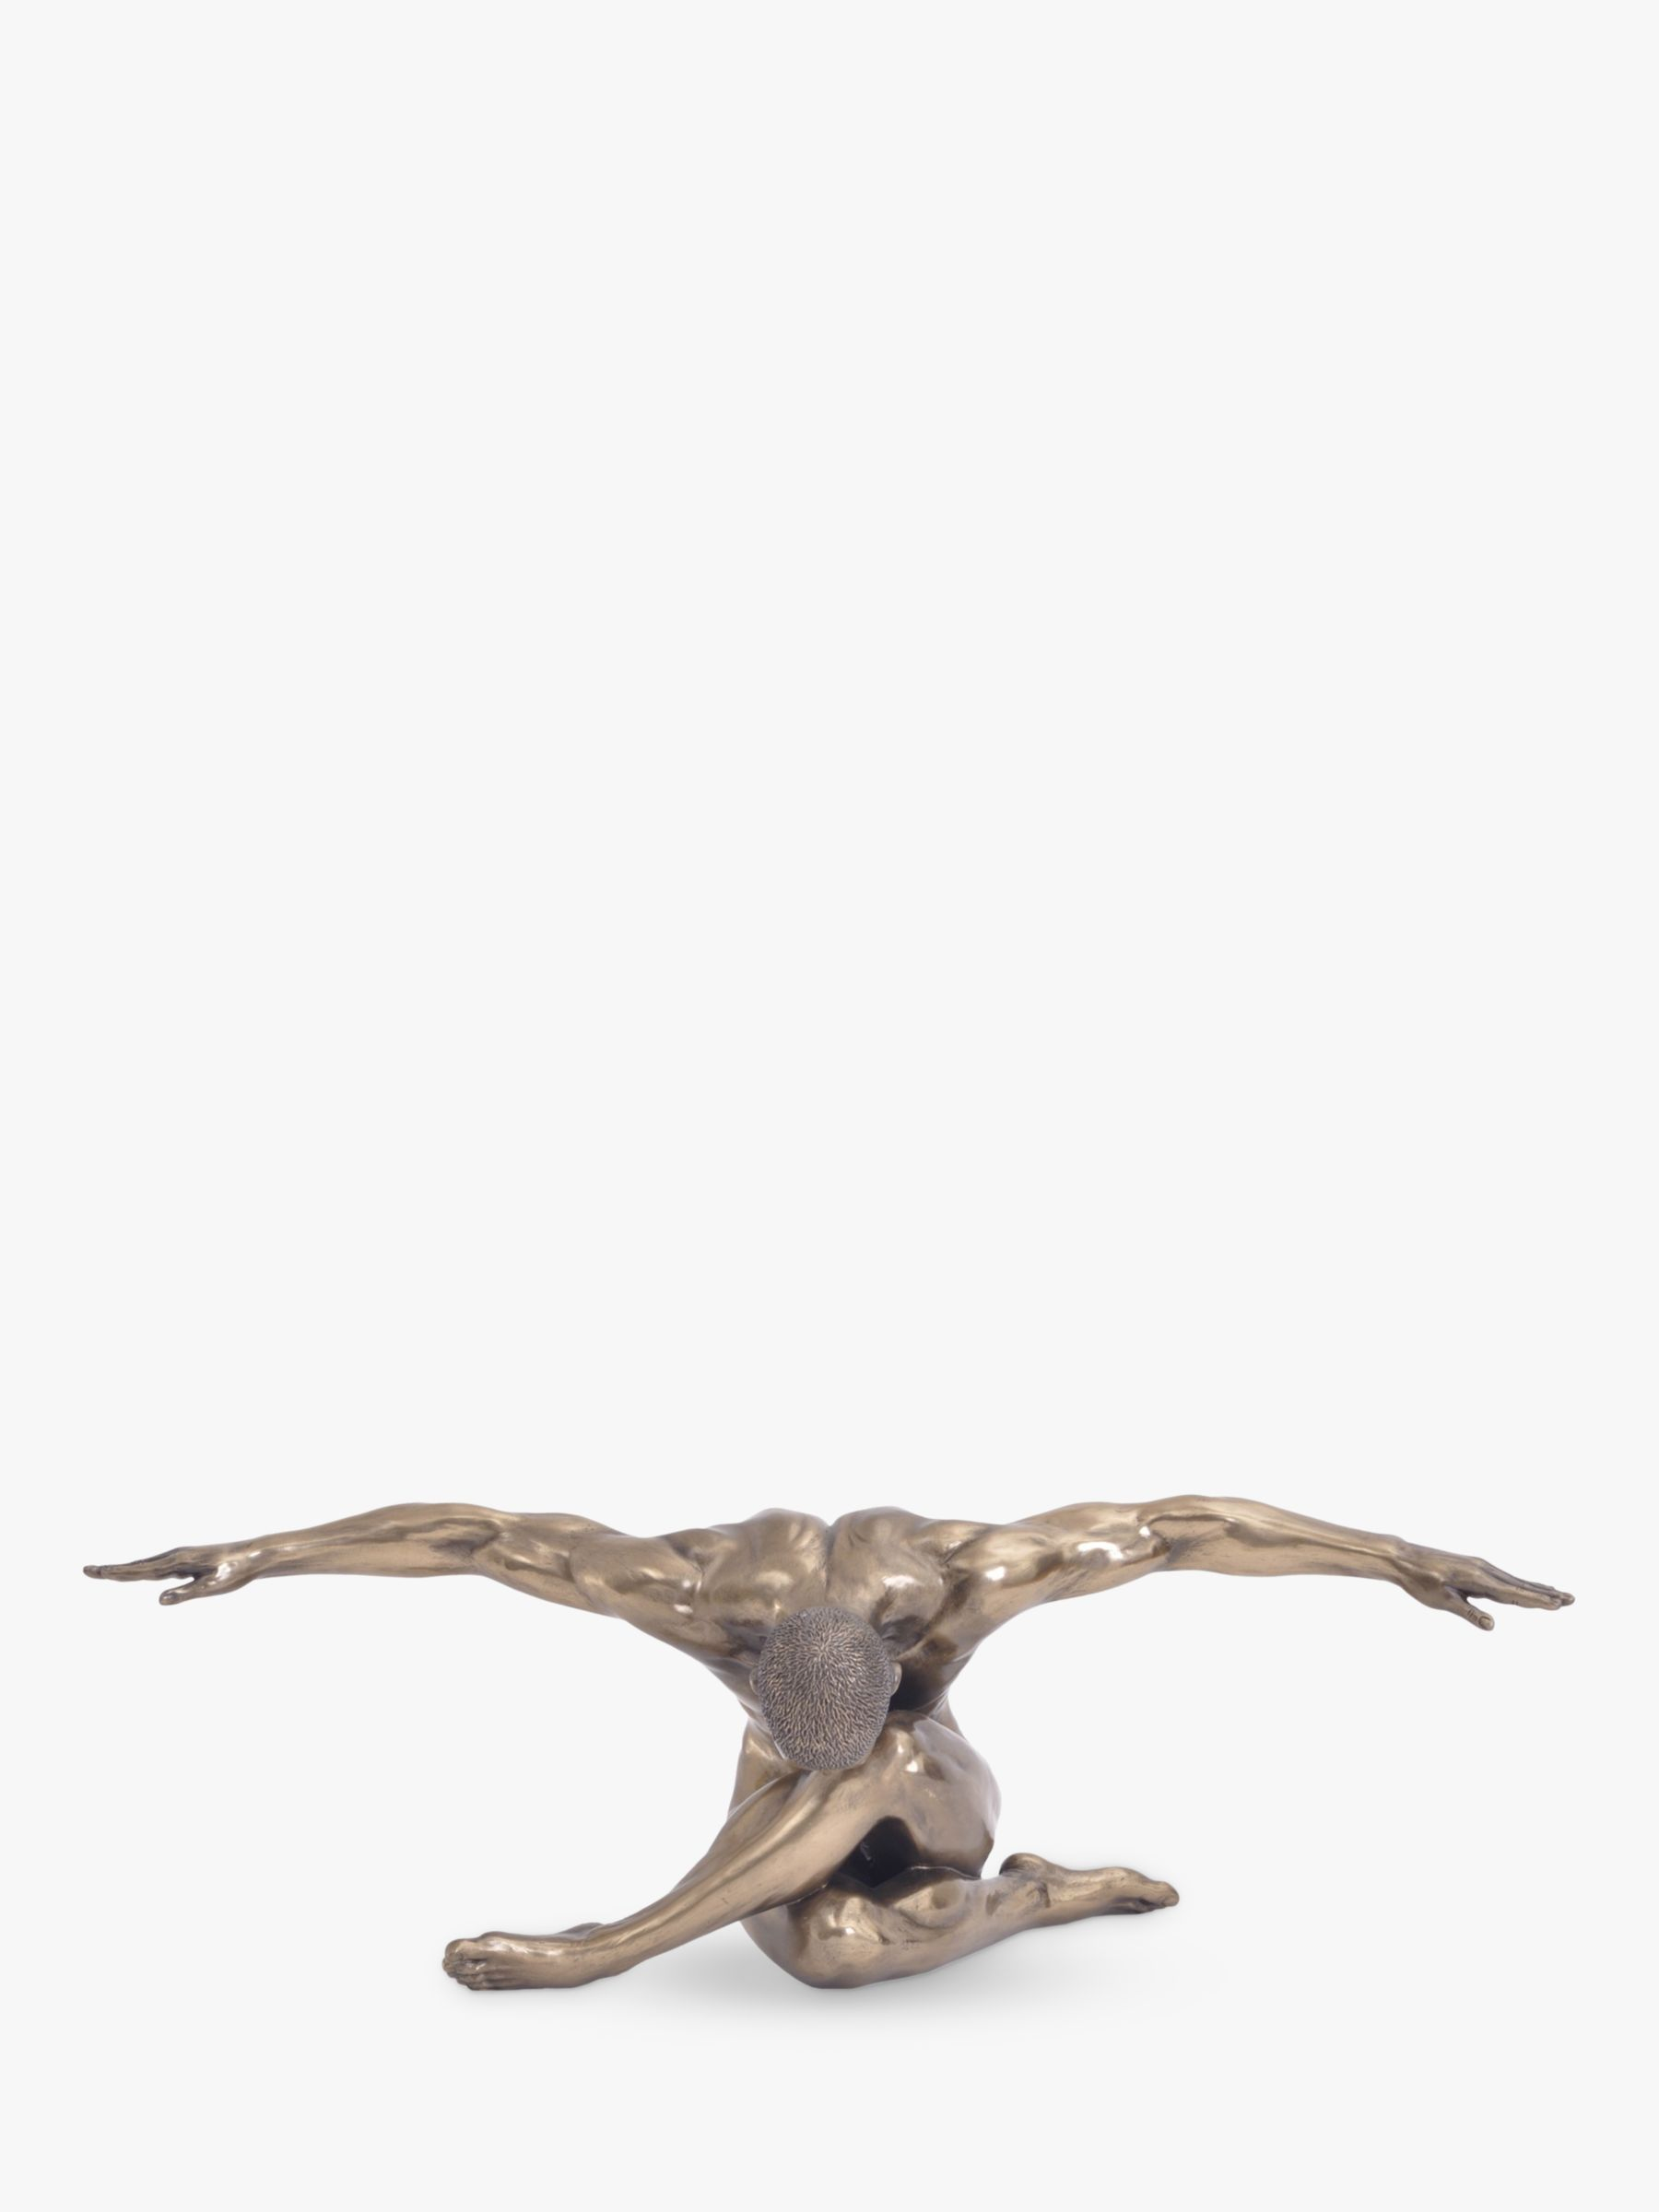 Libra Libra Male Nude Arms Outstretched Sculpture